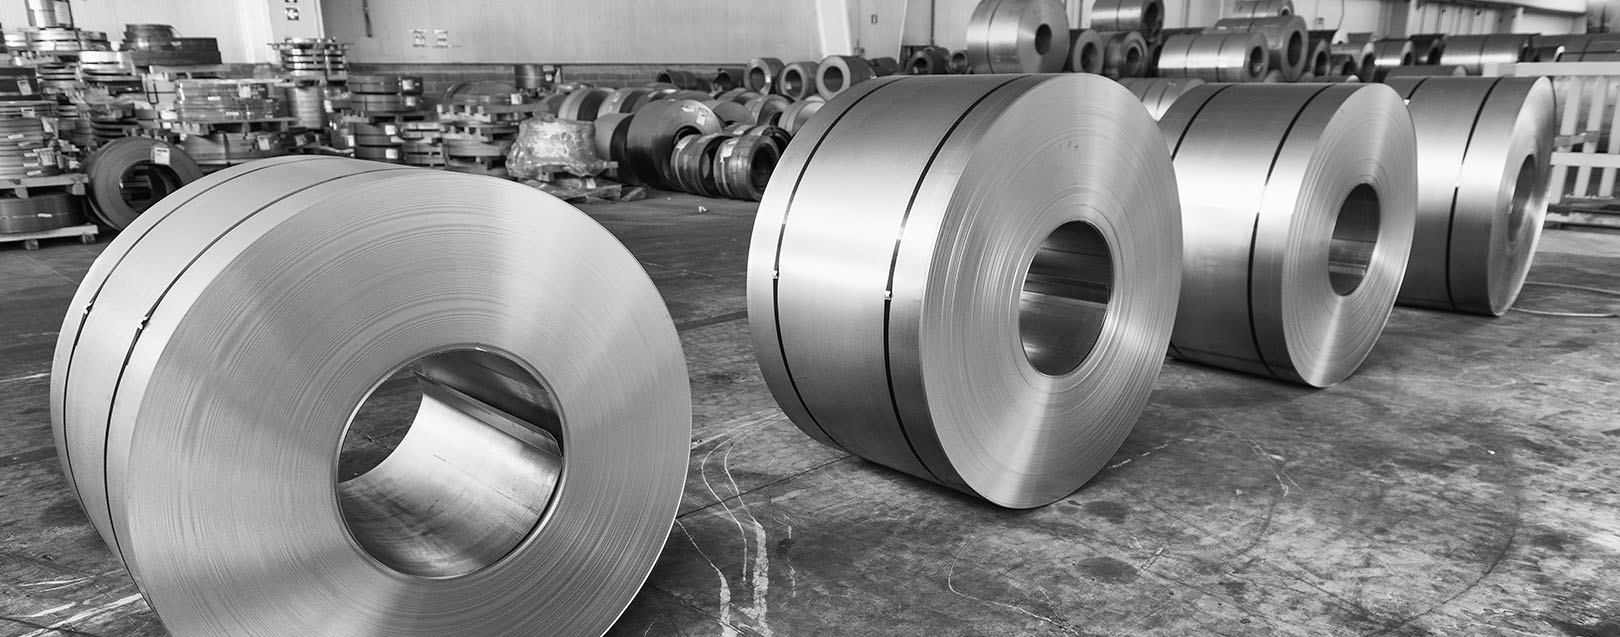 Anti-dumping duty imposed on steel products from China: Vishnu Deo Sai